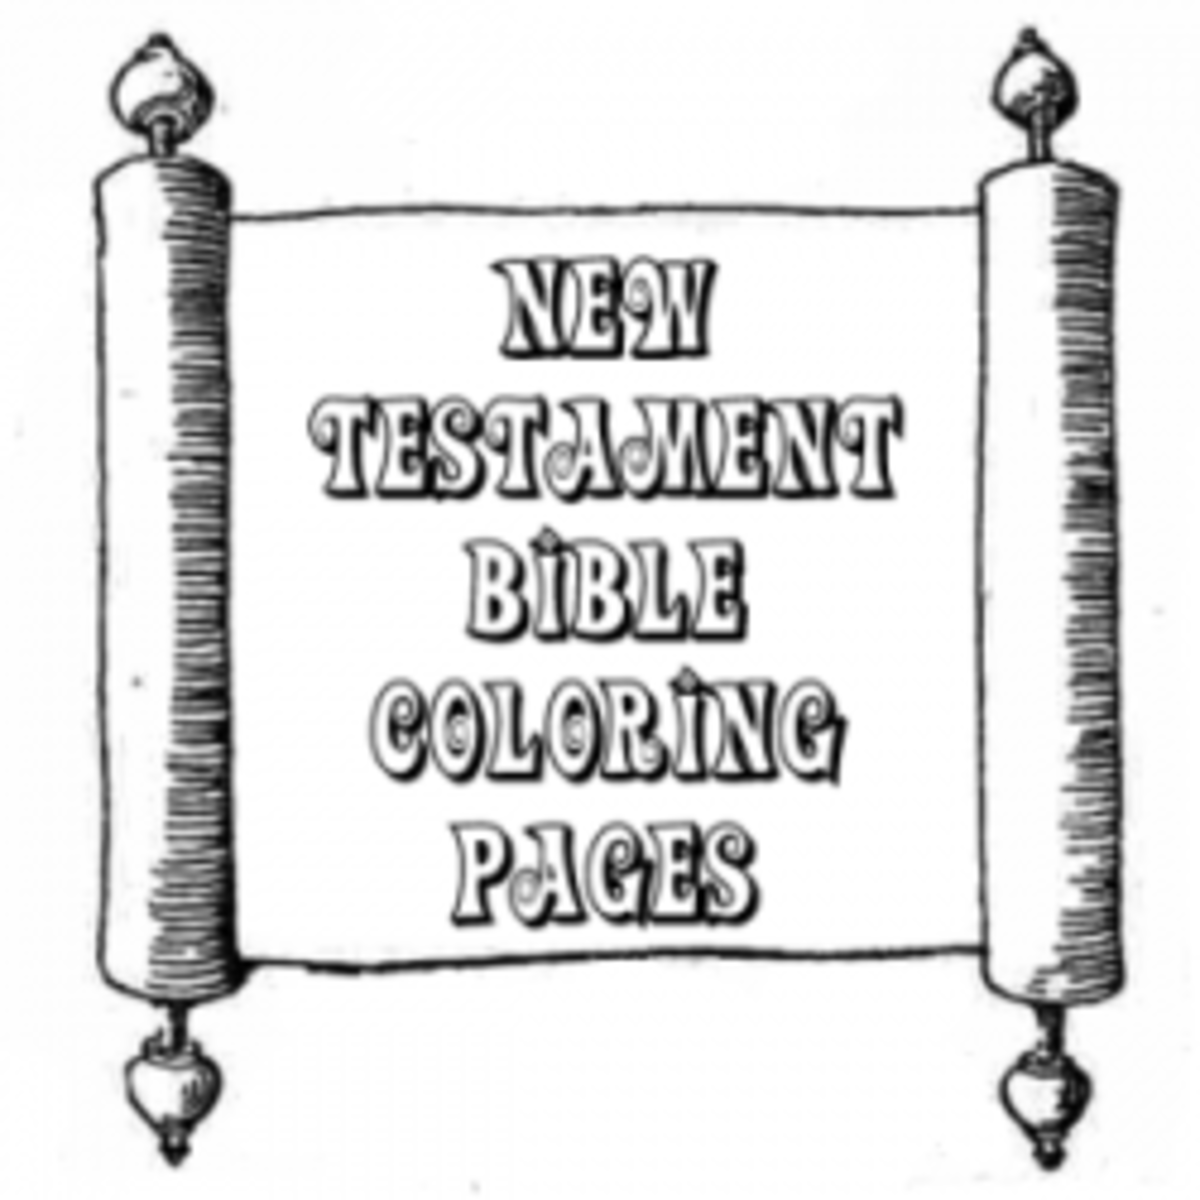 bible-coloring-pages-nt